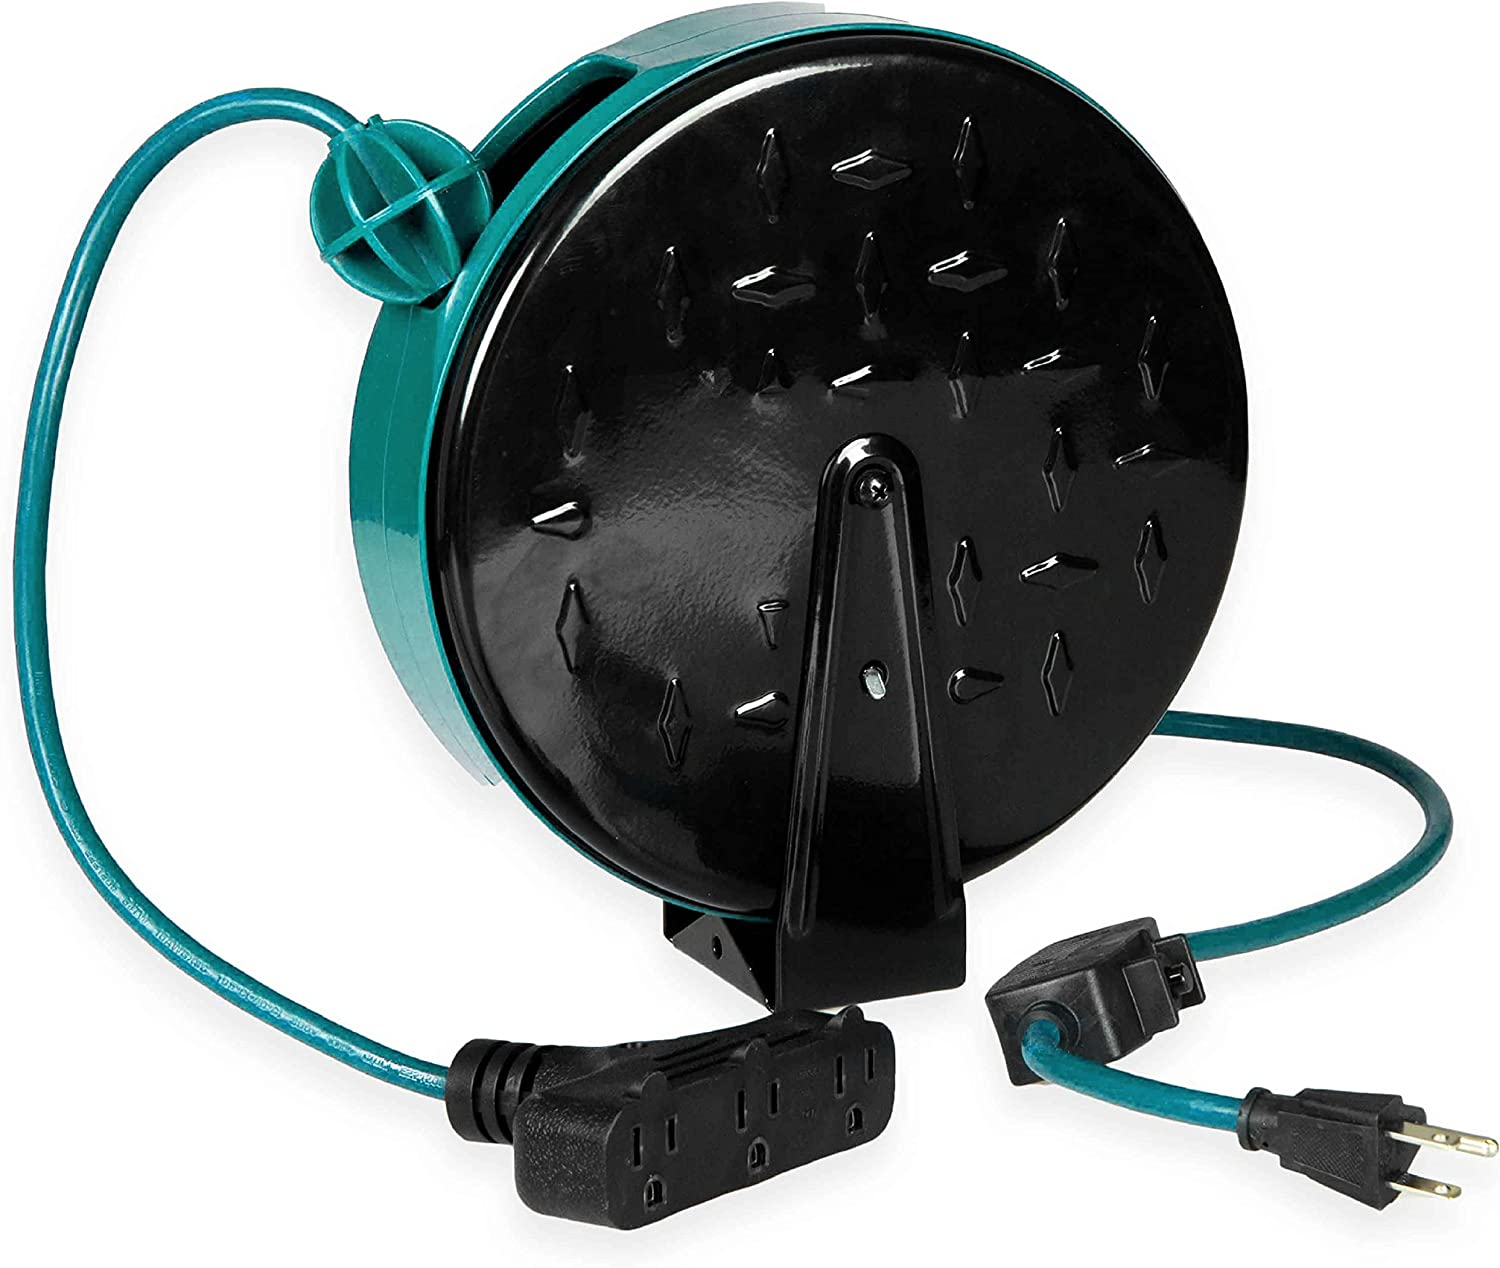 Retractable San Diego Mall Extension Cord Reel 30 2021 autumn and winter new Ft 3 with Outlets Breaker